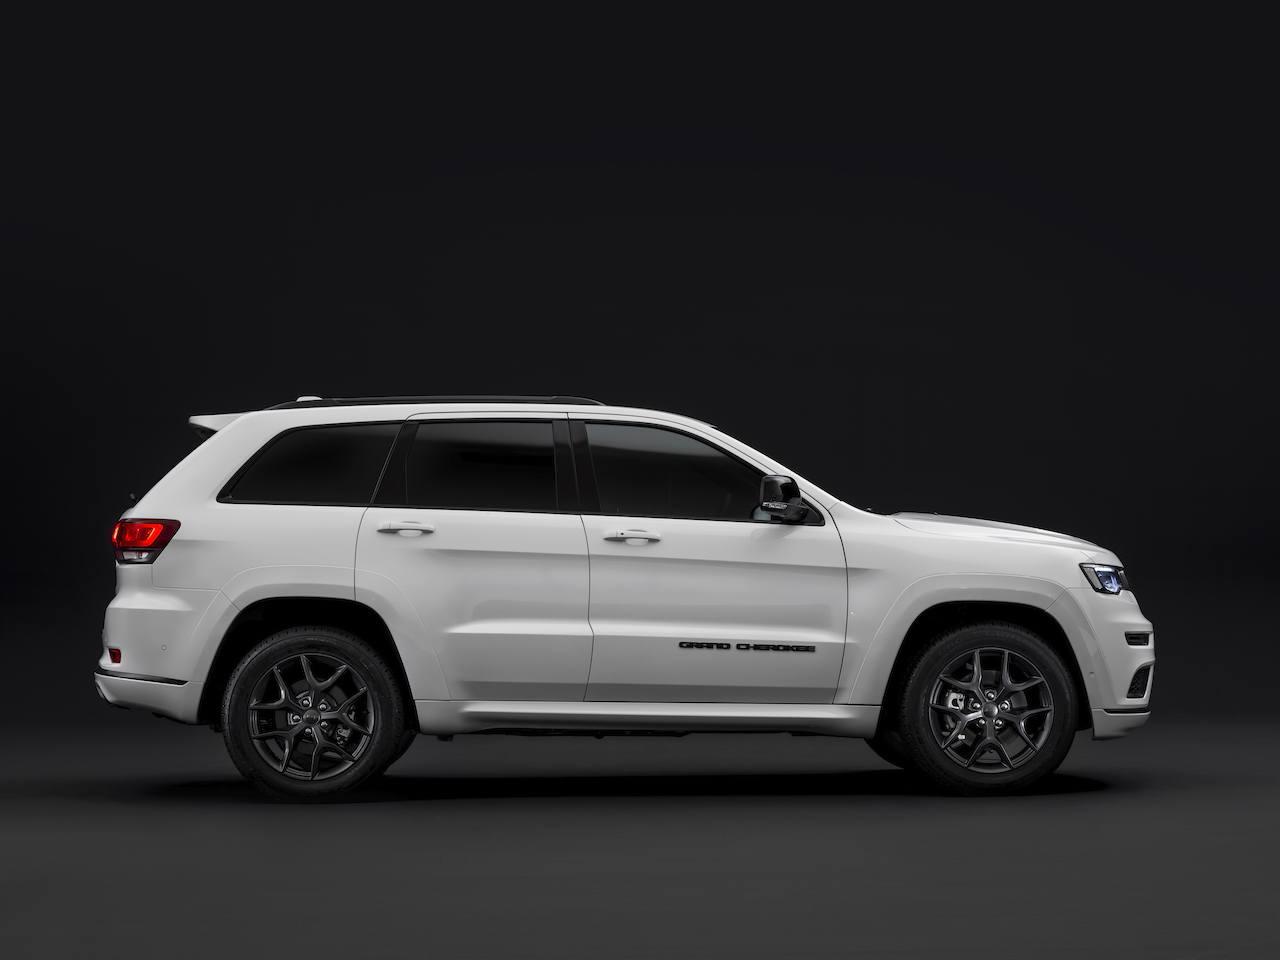 2021 Grand Cherokee Srt Prices